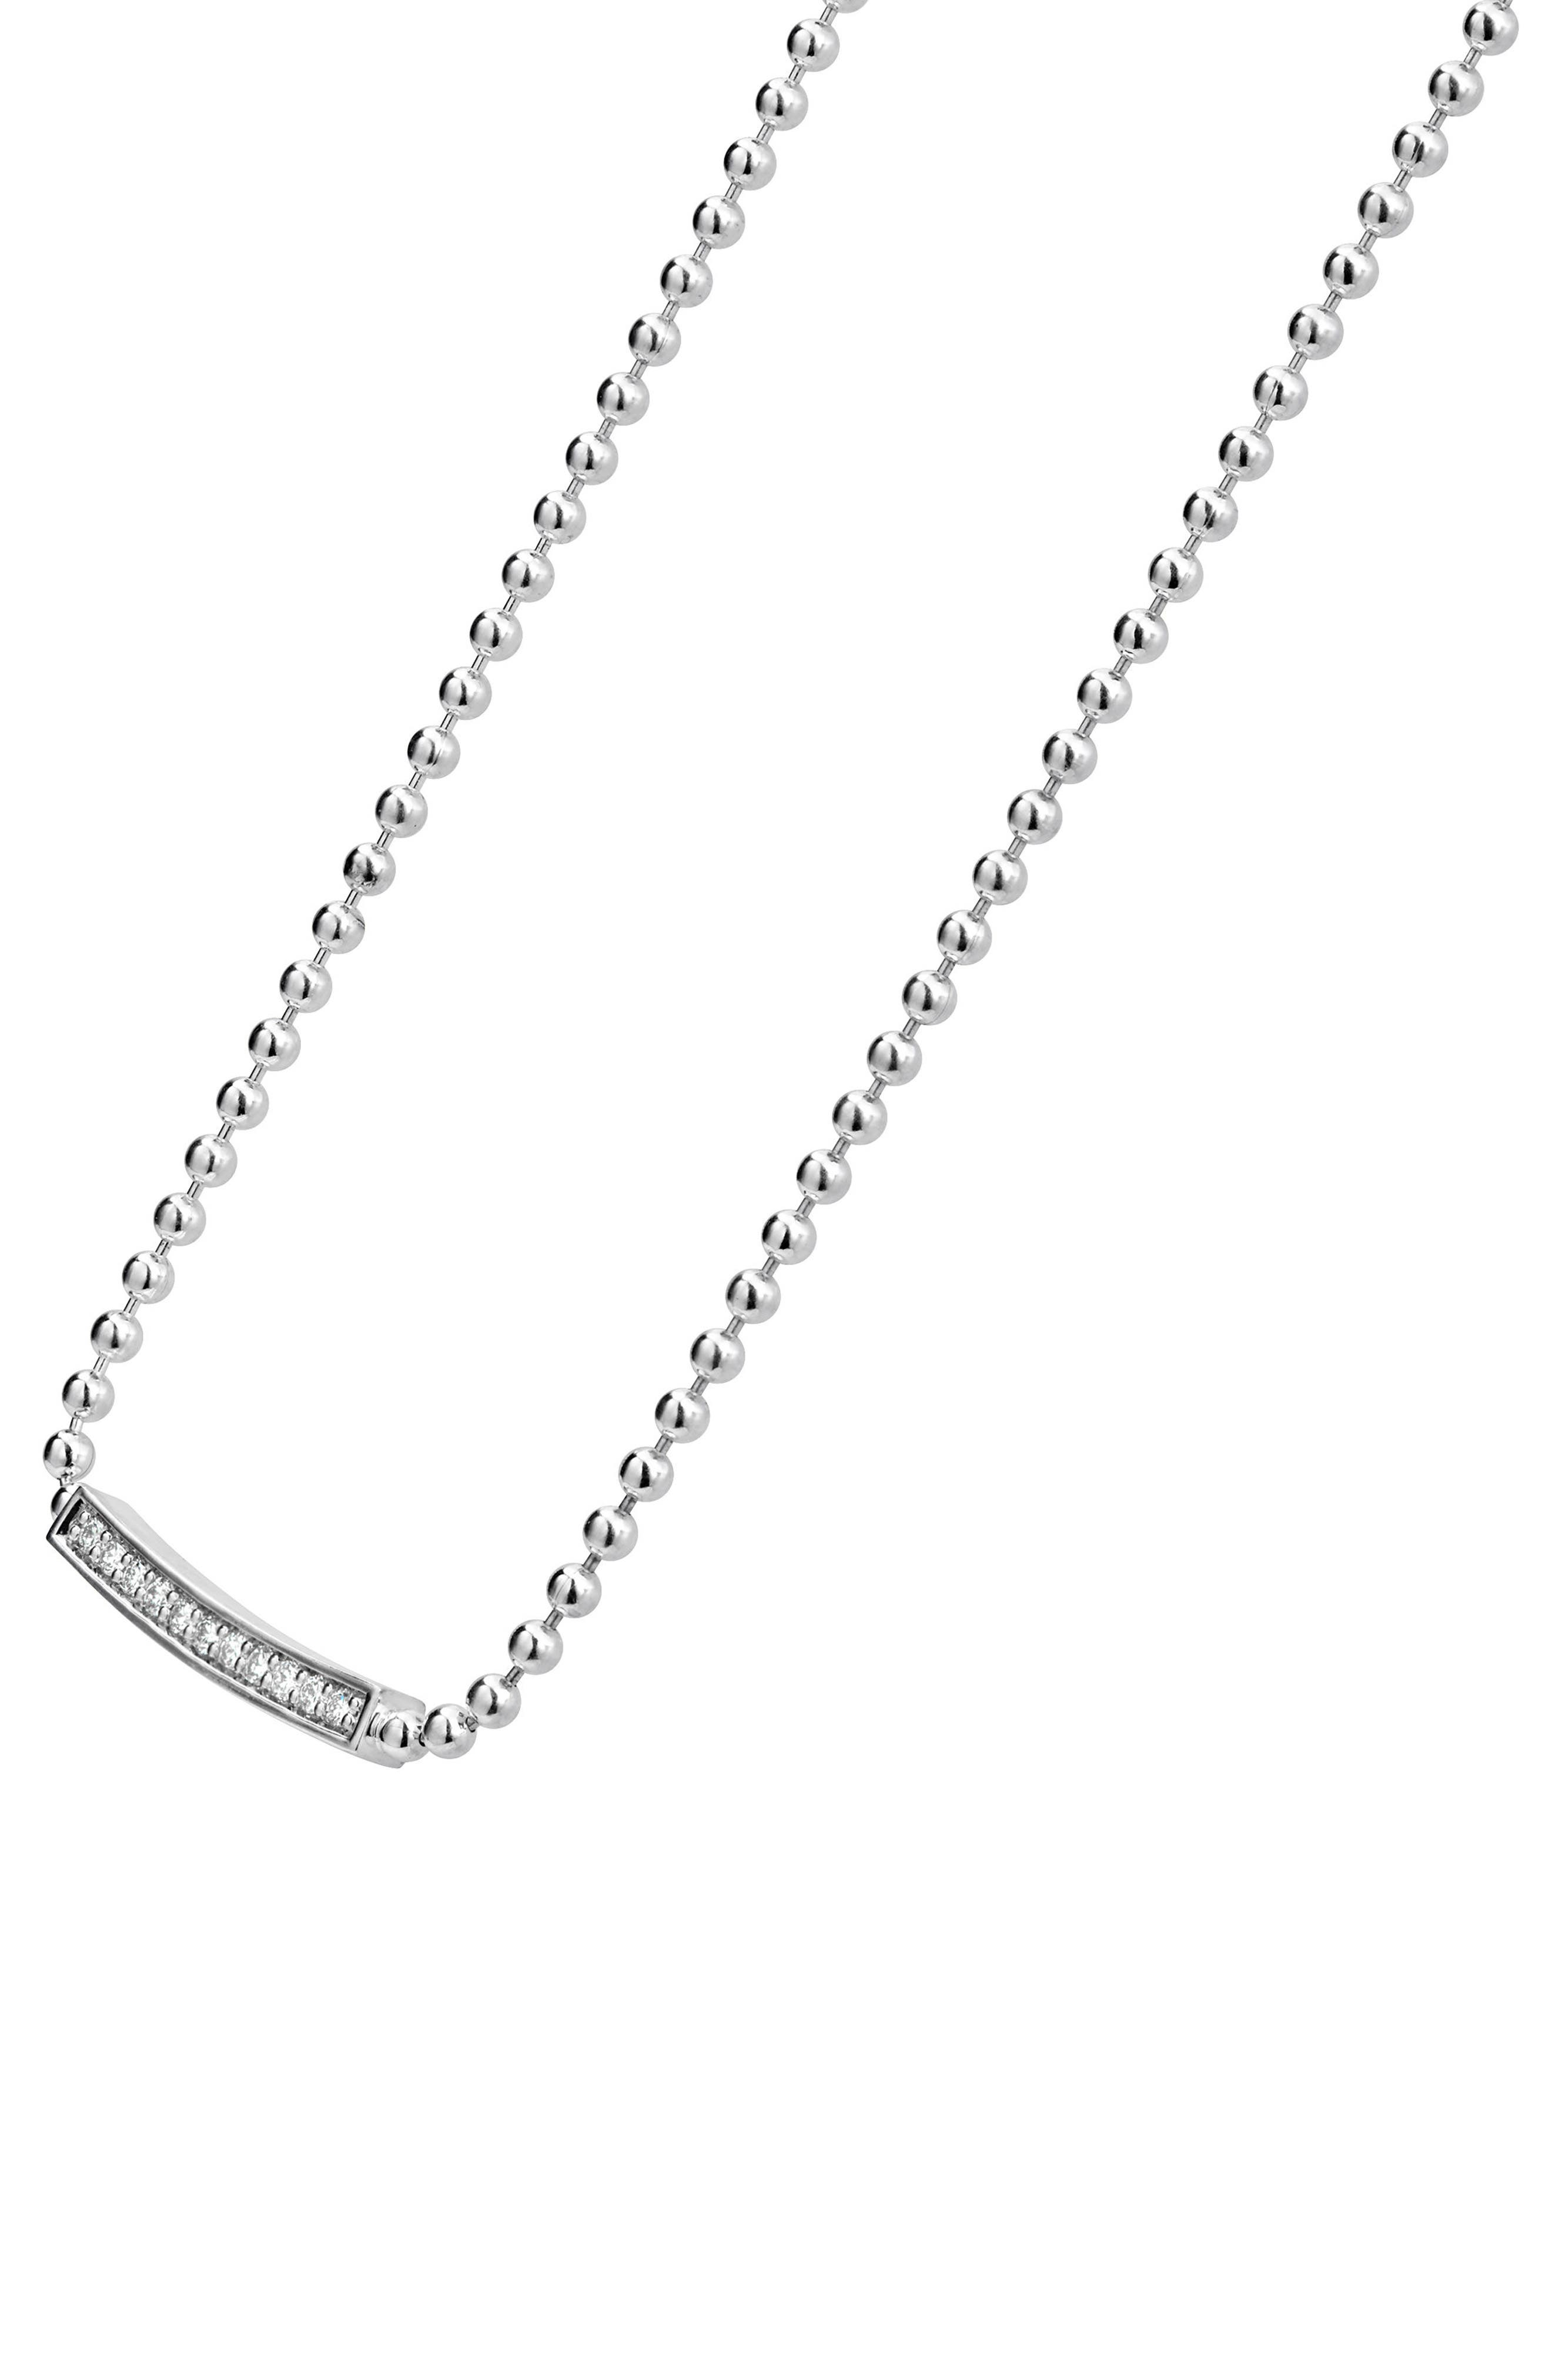 Caviar Spark Diamond Pendant Necklace,                             Alternate thumbnail 3, color,                             Silver/ Diamond